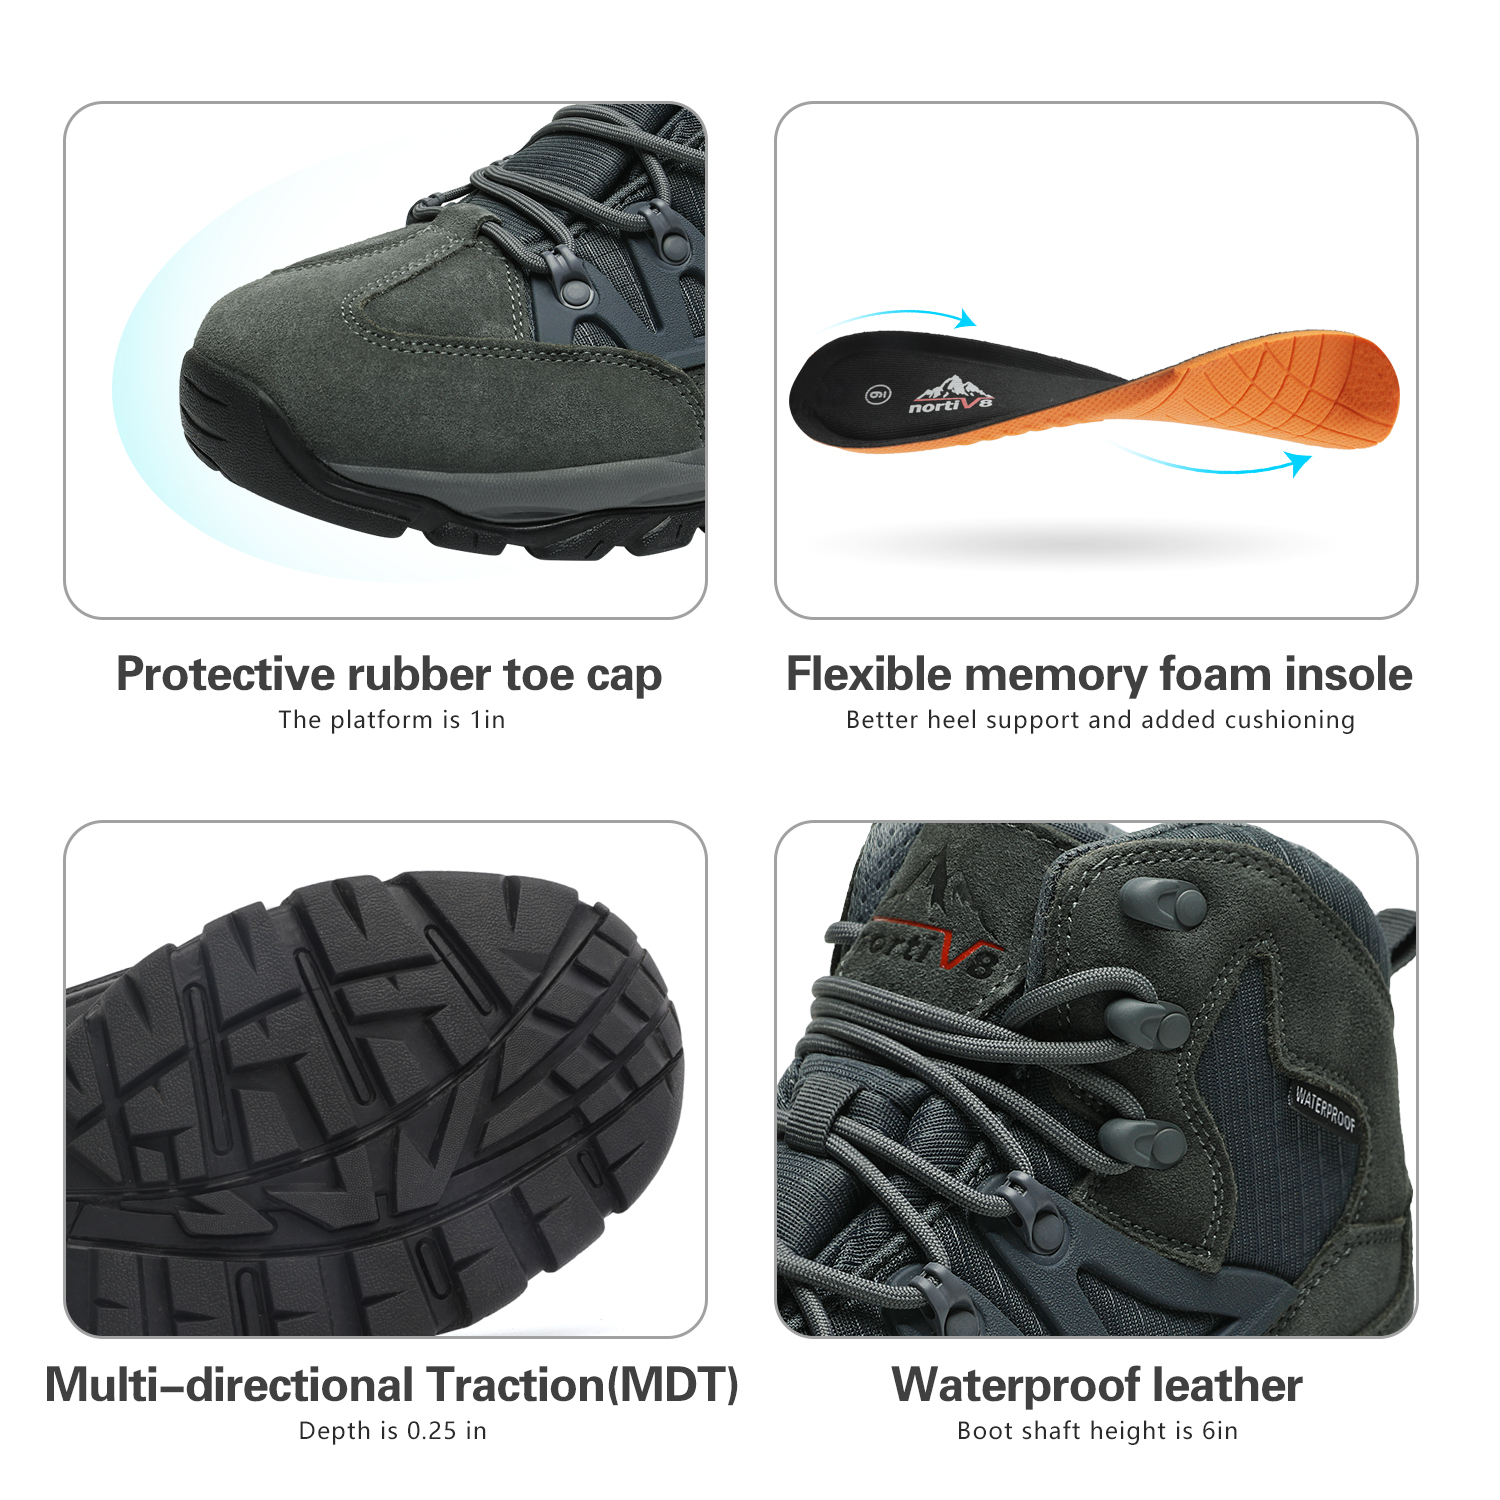 NORTIV-8-Men-039-s-Ankle-Waterproof-Hiking-Boots-Lightweight-Backpacking-Work-Shoes thumbnail 47